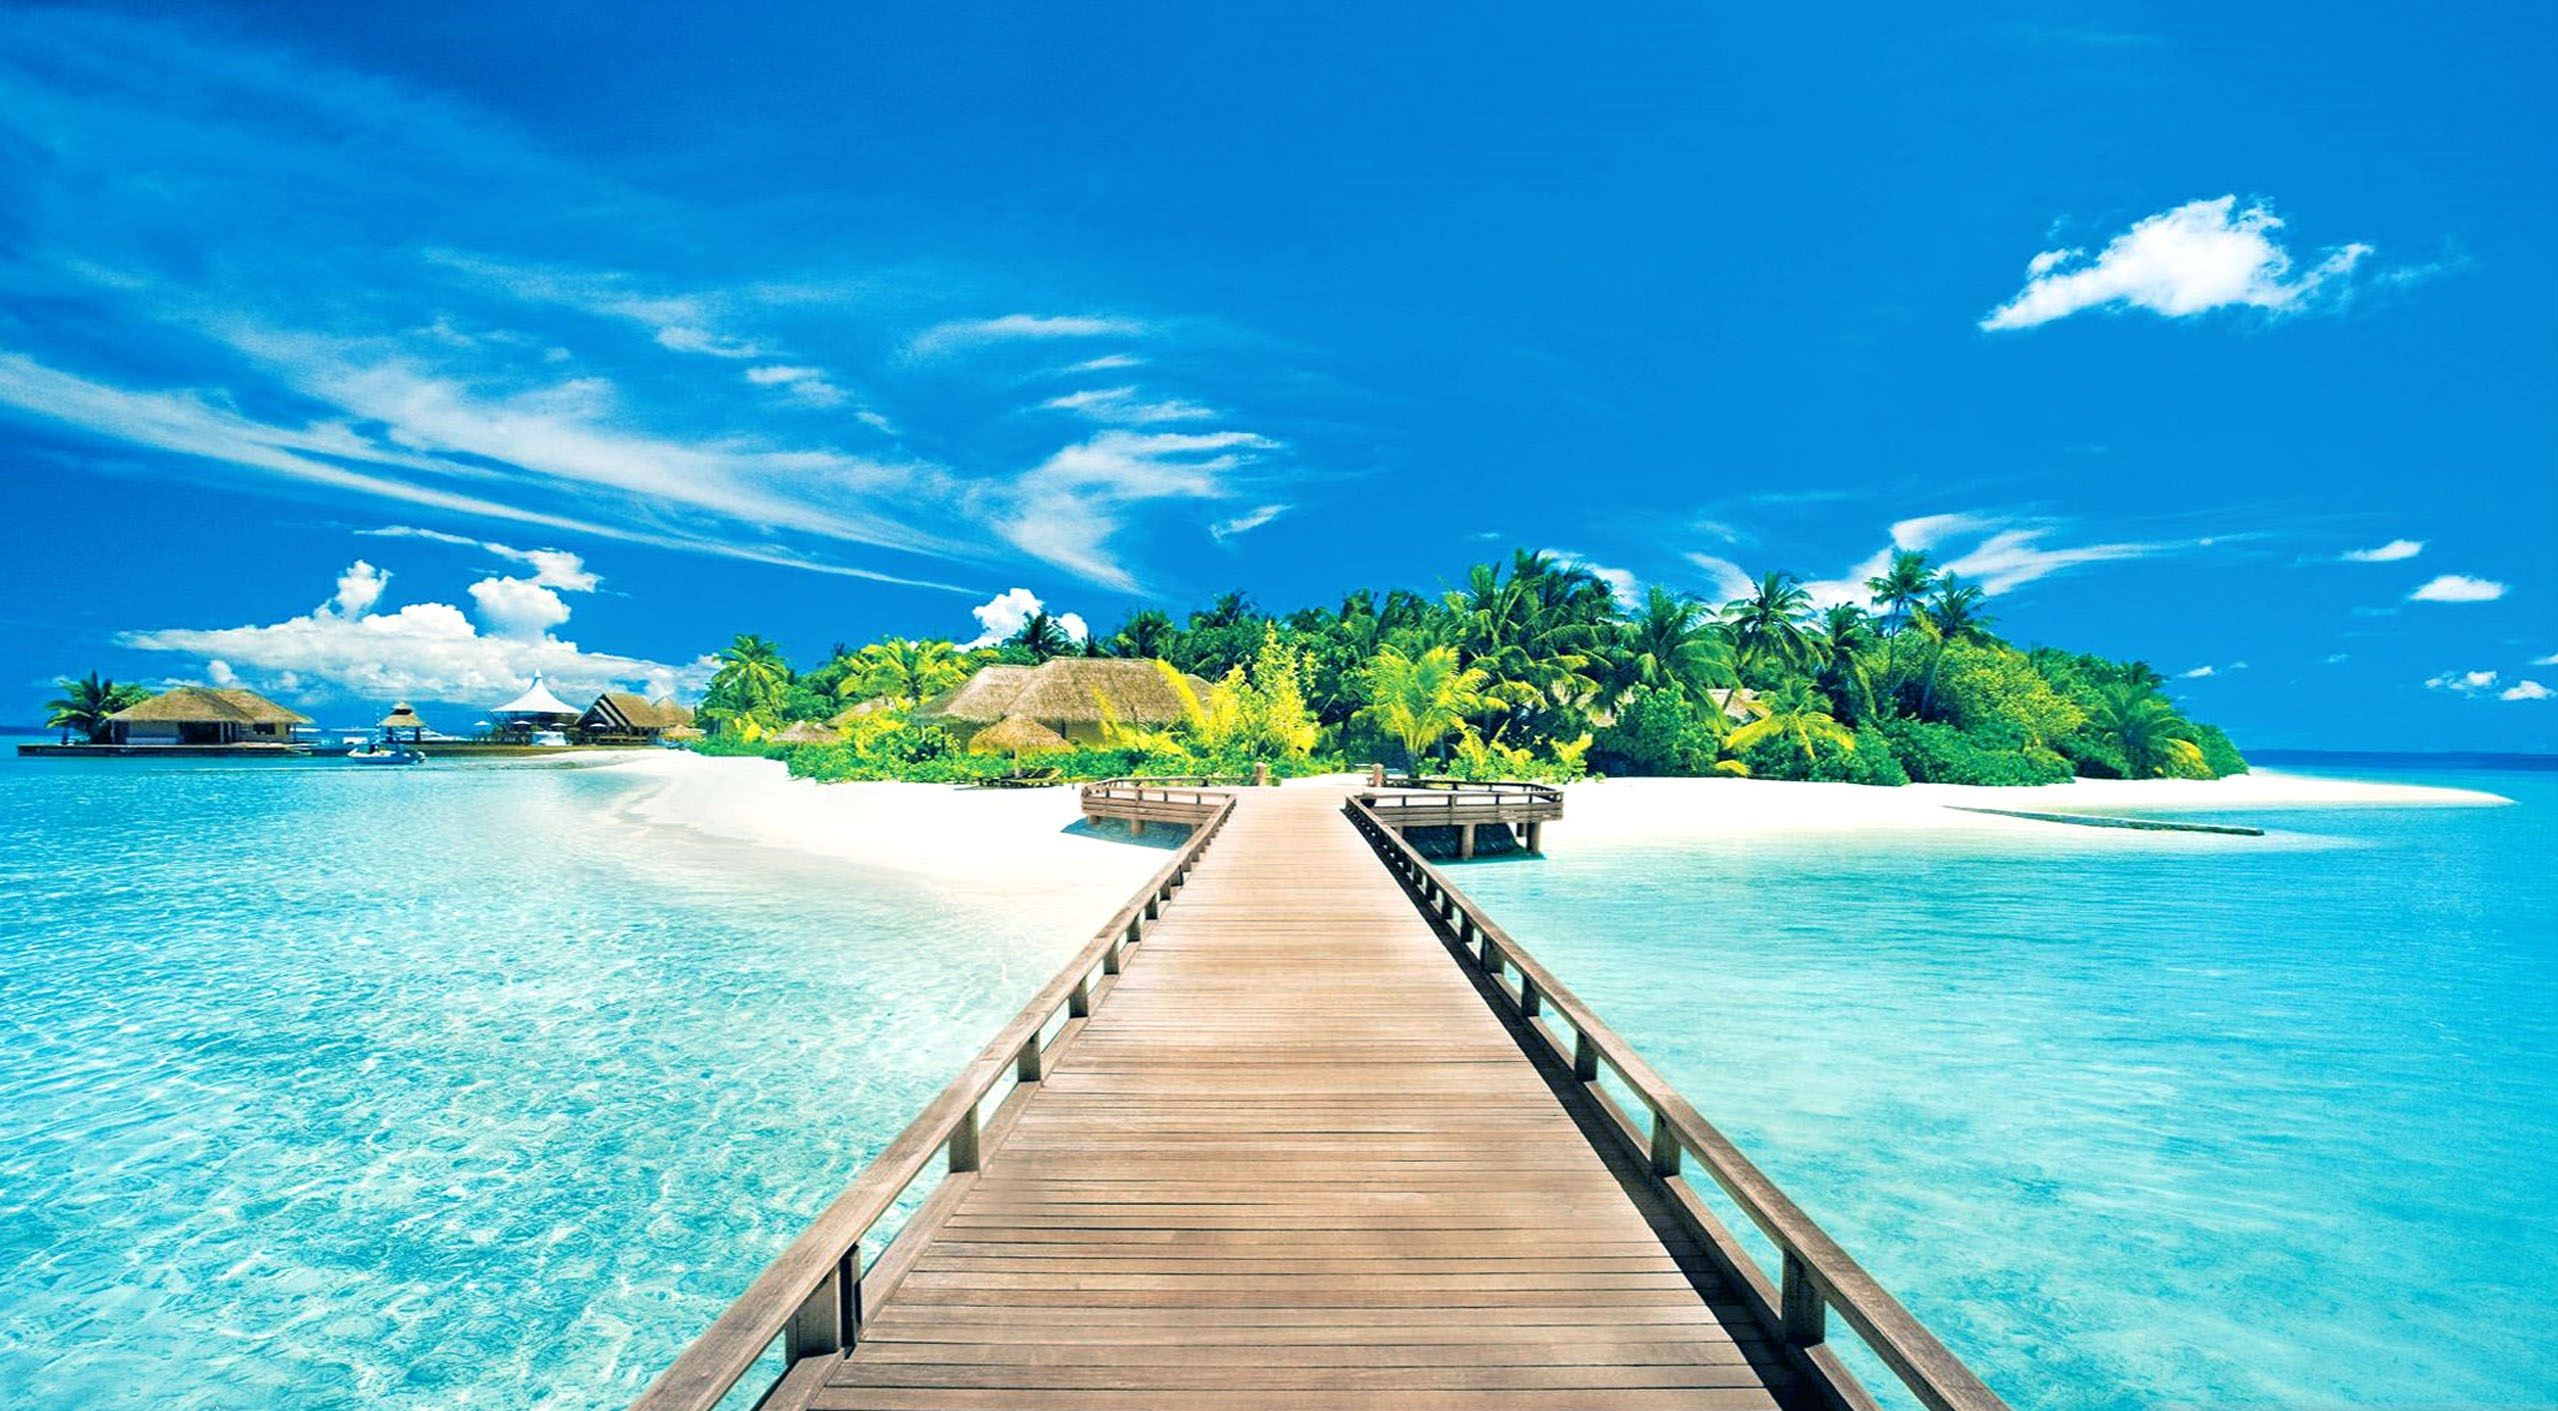 Best Wallpaper Gallery With Beautiful Summer Island And HD Wallpapers We Collected Full High Quality Pictures For Your PC